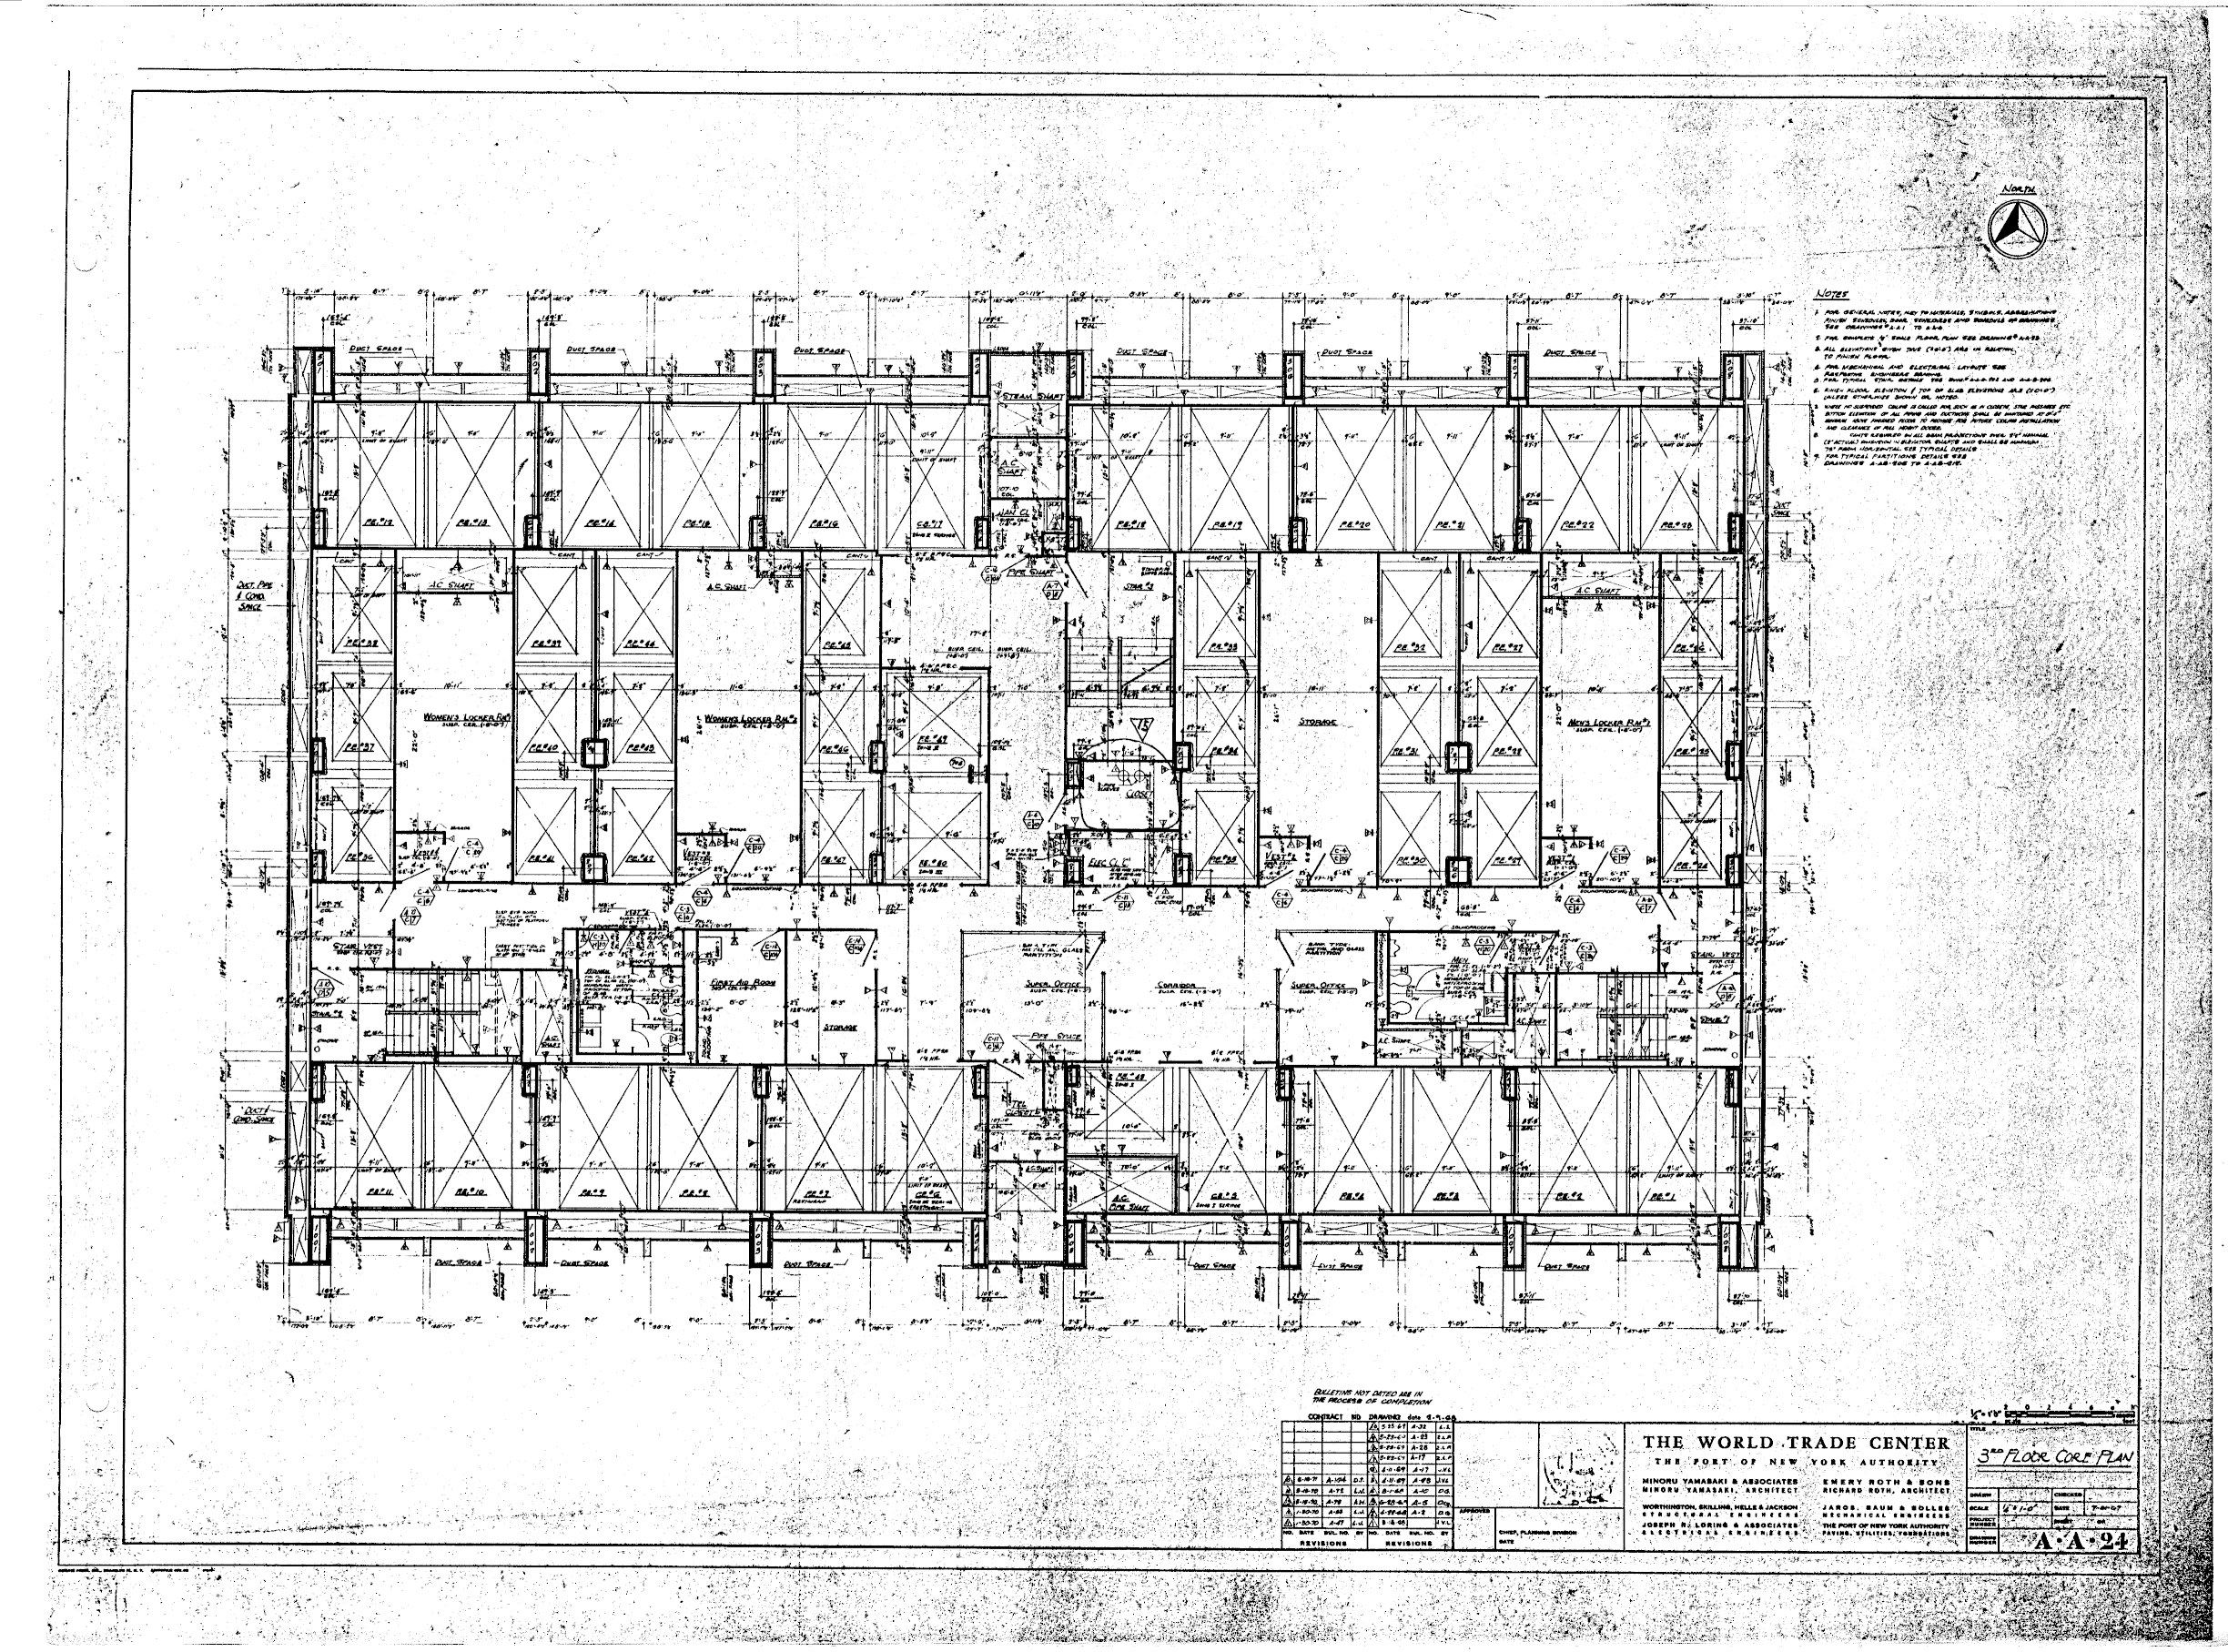 The 3rd floor core plan